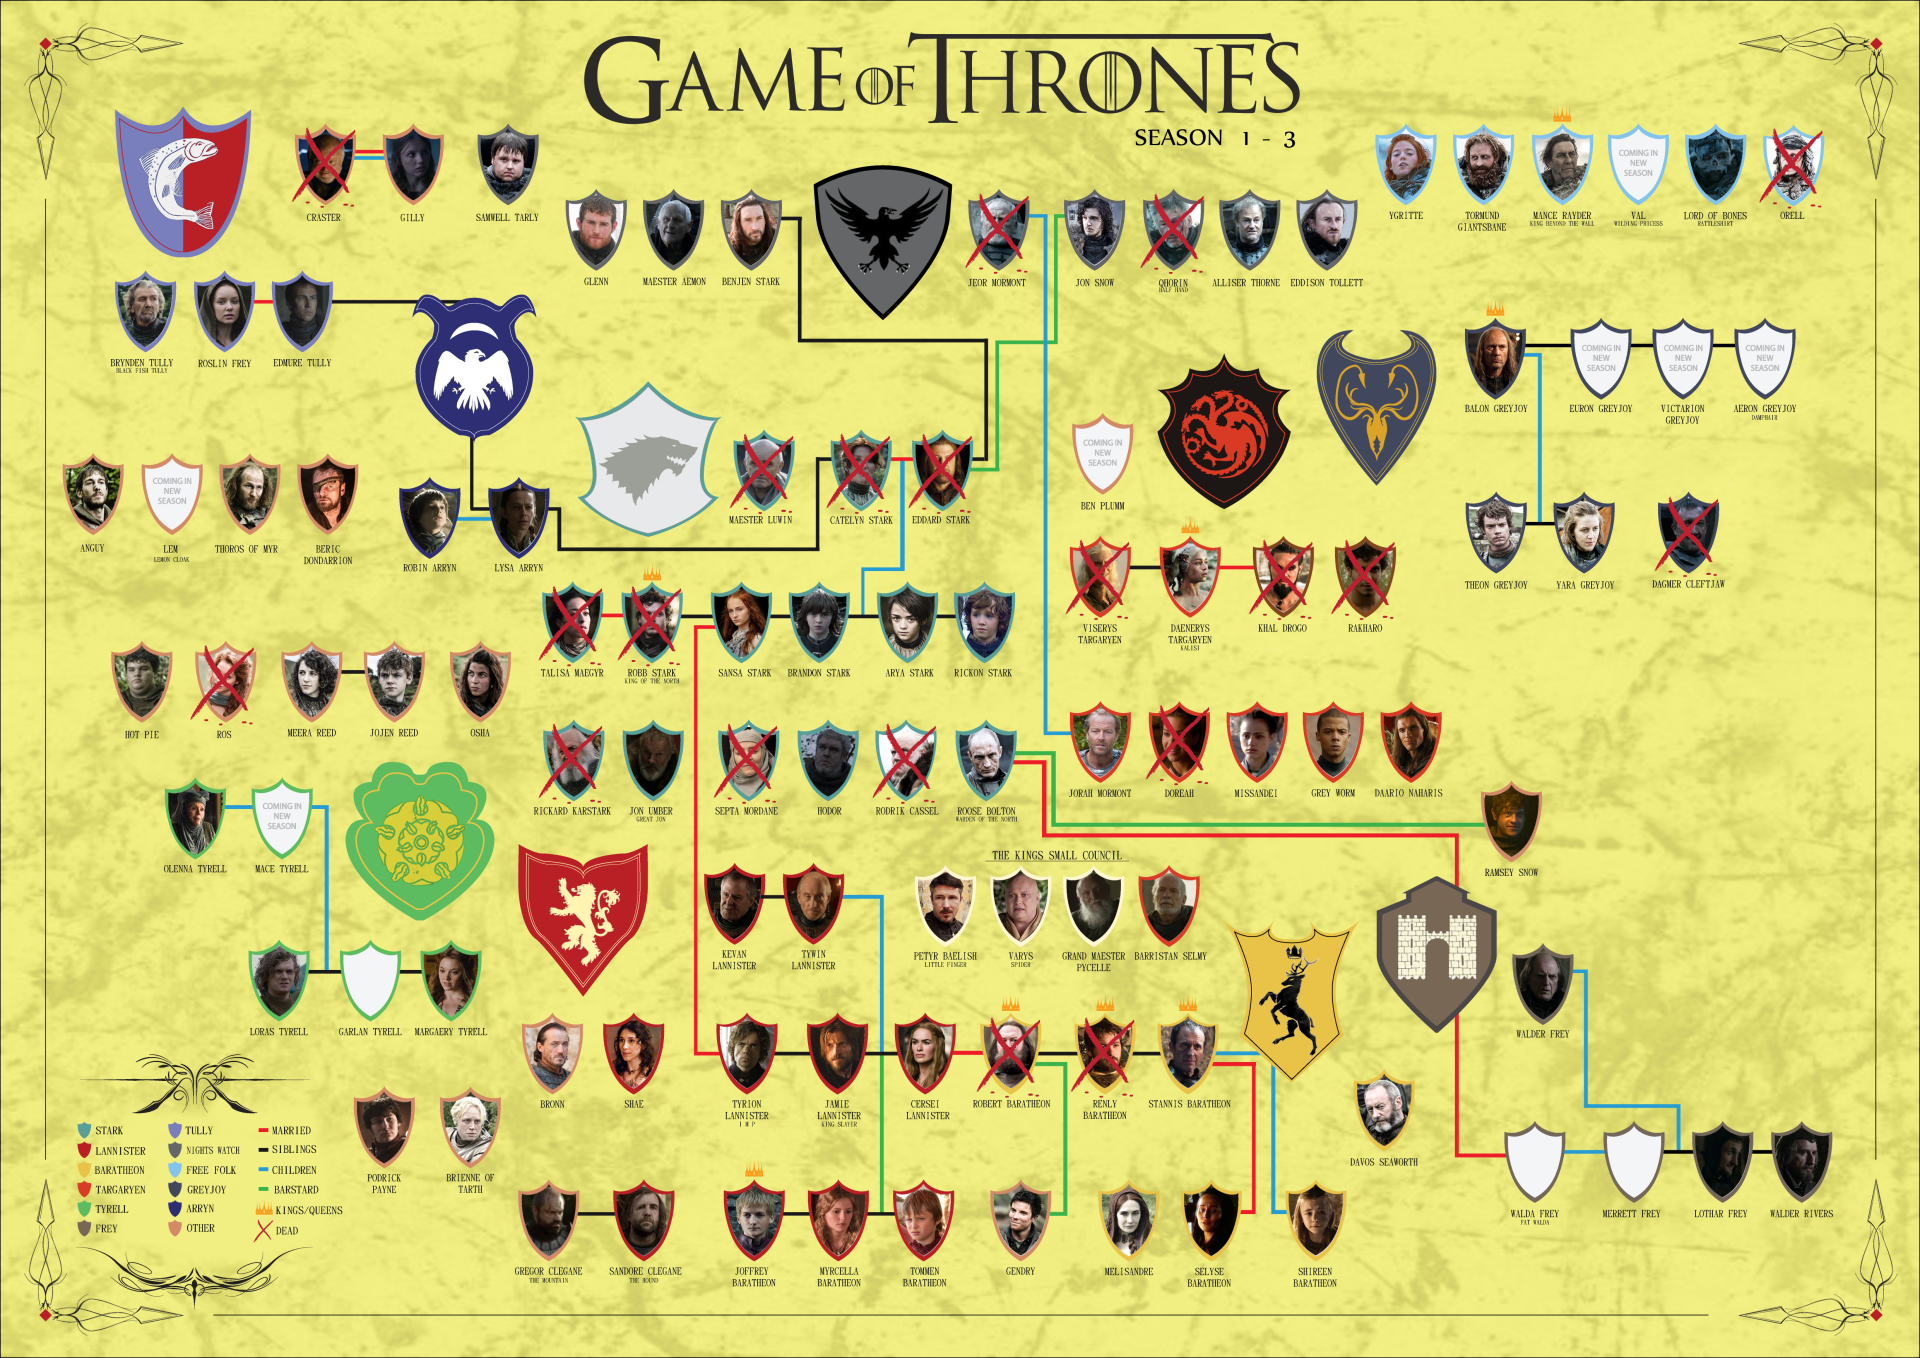 TV Show - Game Of Thrones  Samwell Tarly Gilly (Game Of Thrones) Grenn (Game of Thrones) Aemon Targaryen Benjen Stark Jon Snow Alliser Thorne Dolorous Edd Jeor Mormont Ygritte (Game of Thrones) Tormund Giantsbane Brynden Tully Edmure Tully Thoros of Myr Beric Dondarrion Catelyn Stark Eddard Stark Balon Greyjoy Theon Greyjoy Yara Greyjoy Drogo (Game Of Thrones) Daenerys Targaryen Viserys Targaryen Talisa Stark Robb Stark Sansa Stark Bran Stark Arya Stark Meera Reed Jojen Reed Osha (Game Of Thrones) Rodrik Cassel Roose Bolton Jorah Mormont Missandei (Game Of Thrones) Grey Worm Daario Naharis Ramsay Bolton Olenna Tyrell Loras Tyrell Margaery Tyrell Tywin Lannister Petyr Baelish Lord Varys Pycelle (Game of Thrones) Barristan Selmy Bronn (Game of Thrones) Shae (Game Of Thrones) Tyrion Lannister Jaime Lannister Cersei Lannister Robert Baratheon Stannis Baratheon Renly Baratheon Podrick Payne Brienne Of Tarth Walder Frey Davos Seaworth Gregor Clegane Sandor Clegane Joffrey Baratheon Myrcella Baratheon Tommen Baratheon Gendry (Game Of Thrones) Melisandre (Game of Thrones) Wallpaper